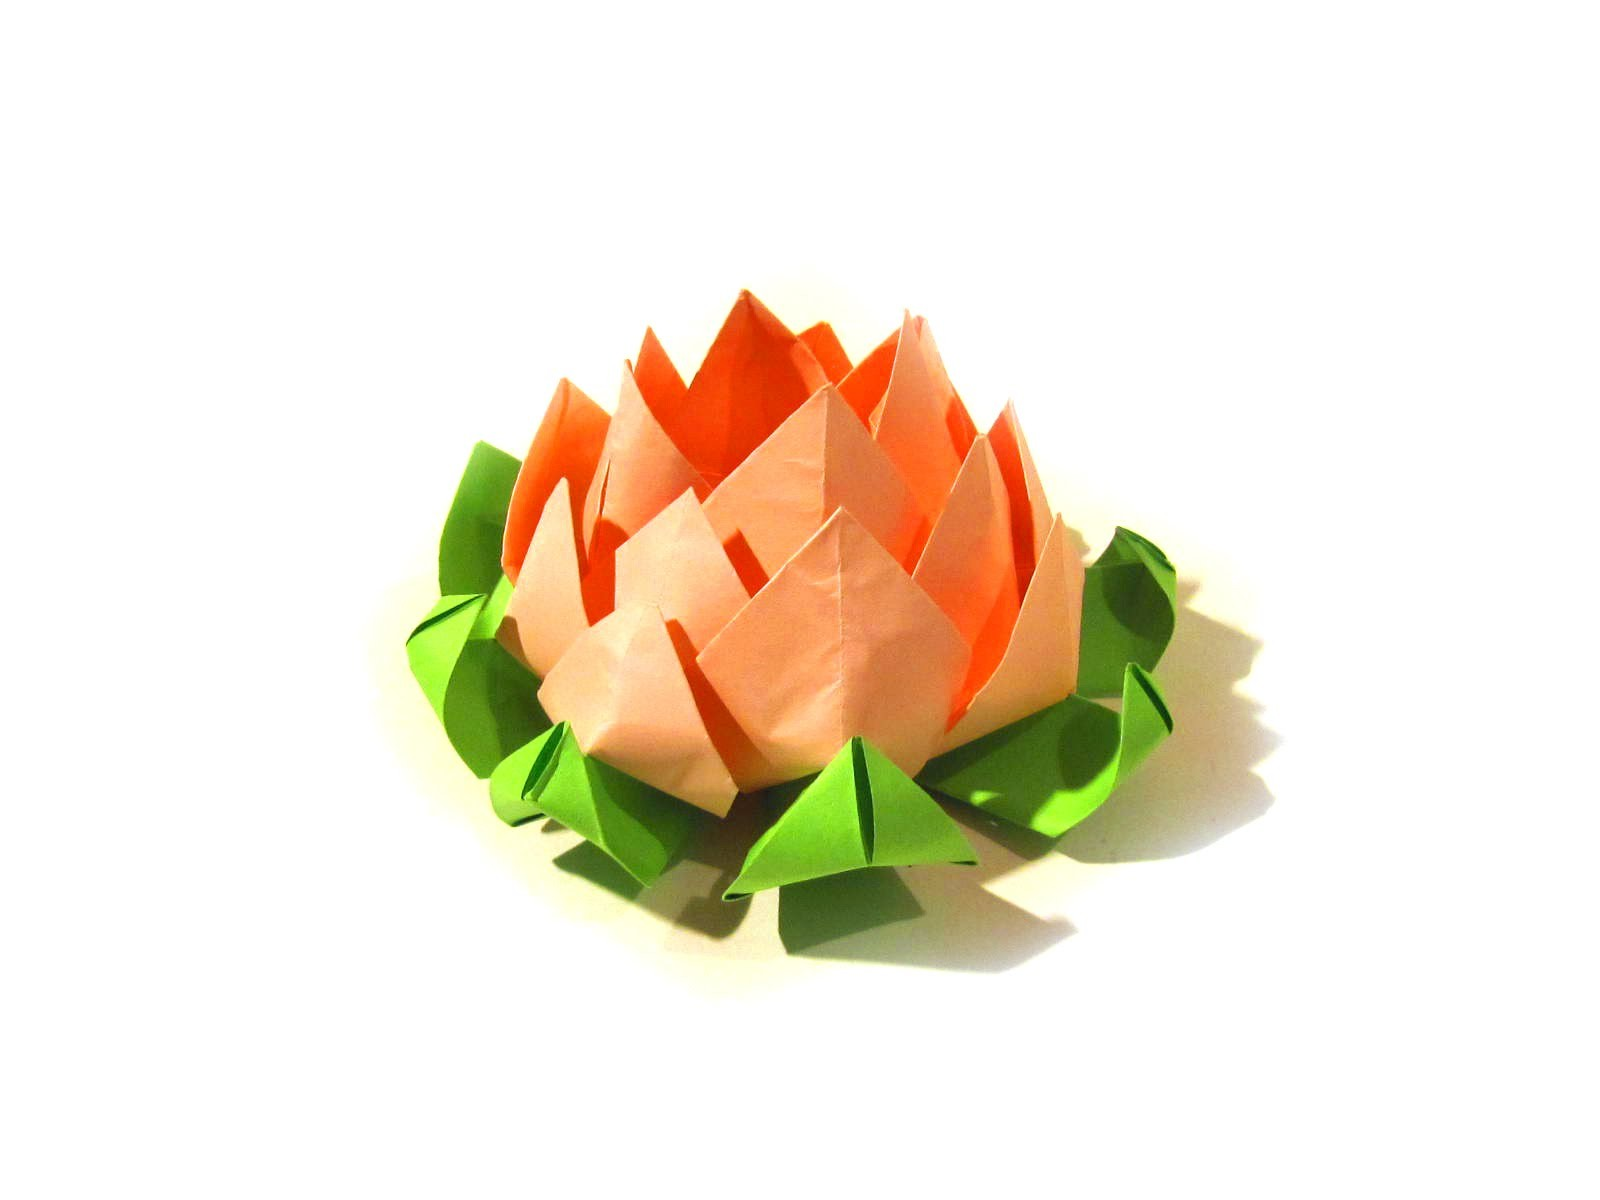 Lotus Flower Origami Modular Origami Very Easy Valentines Day Gift